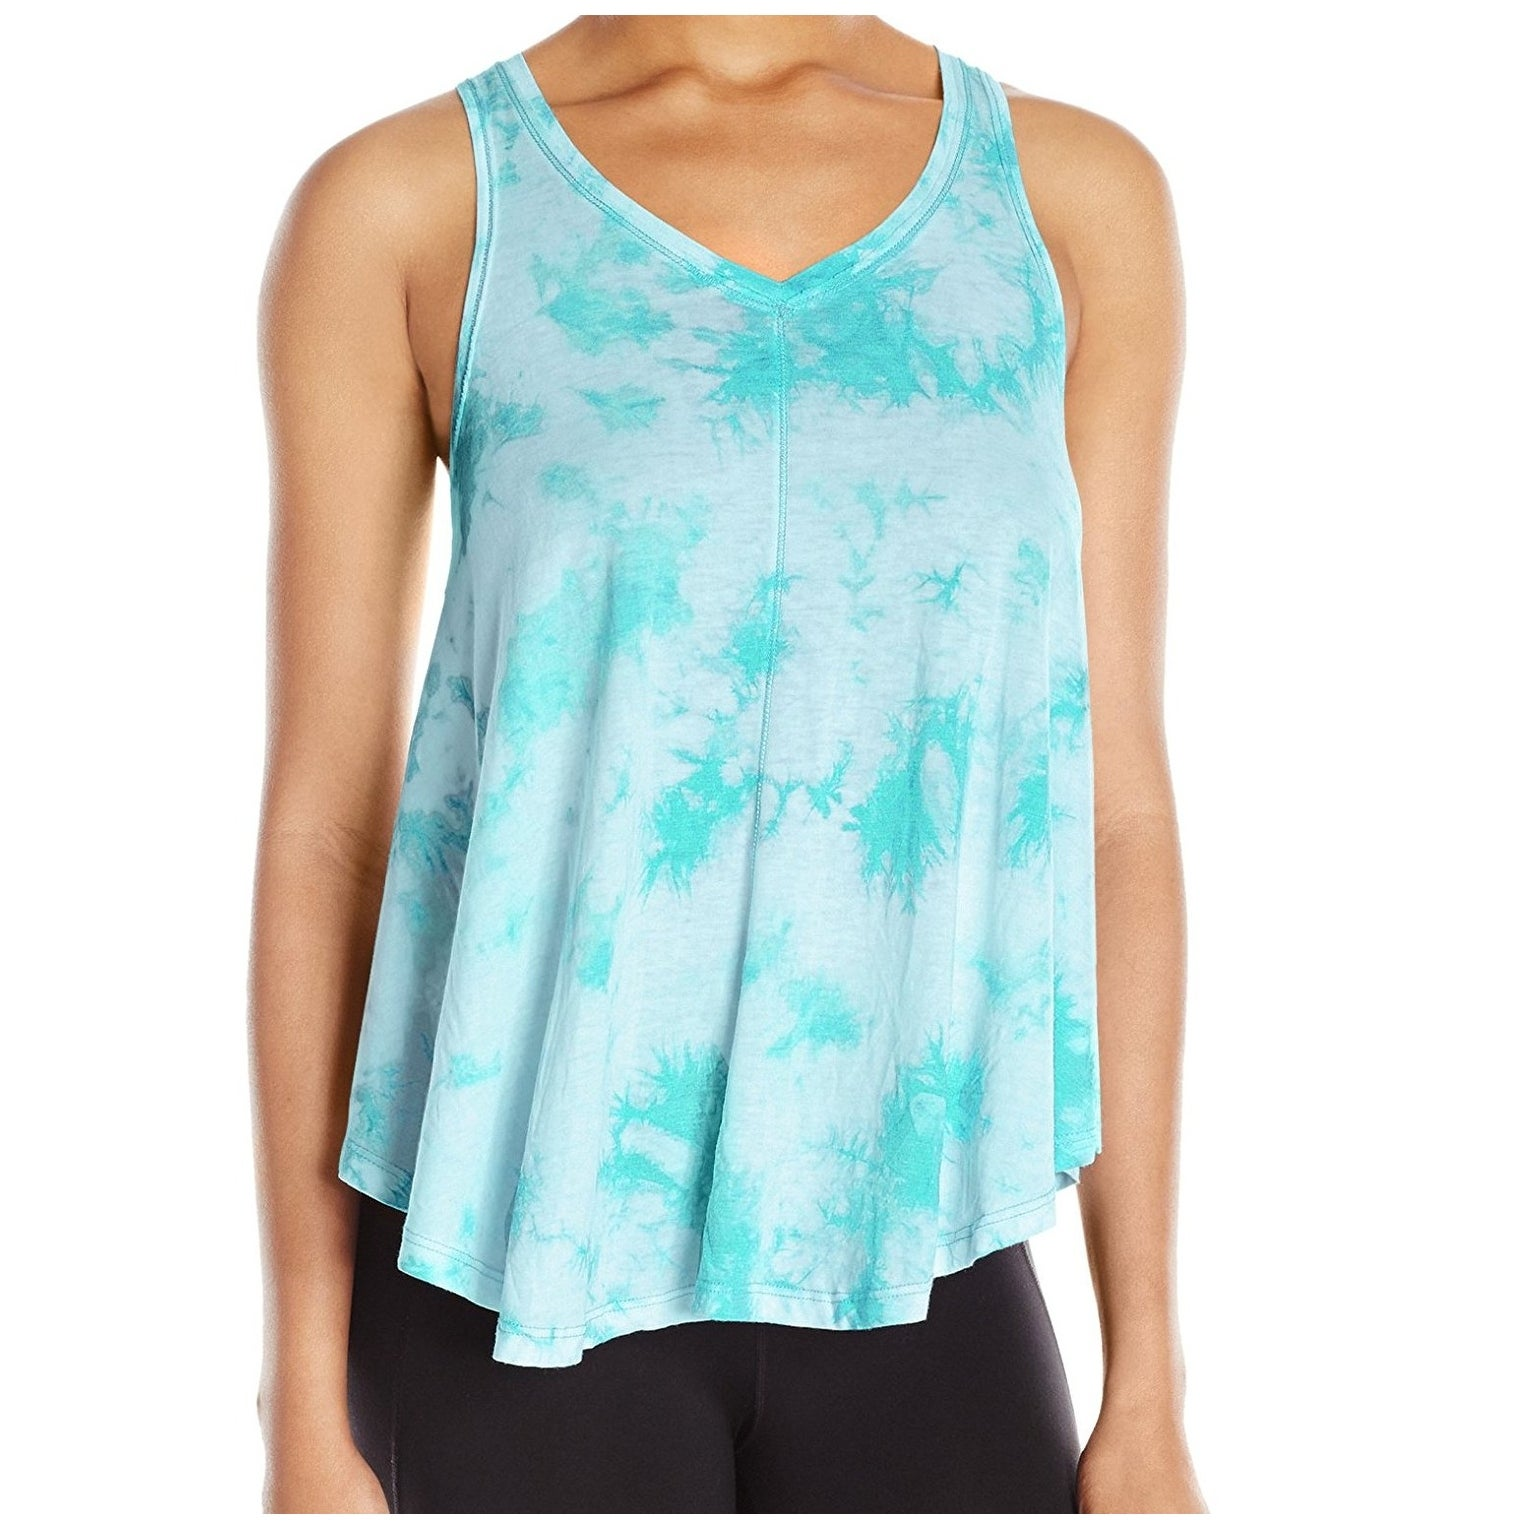 8b9ac4d37d0d0 Shop Calvin Klein Performance NEW Blue Womens Size Medium M Tie-Dye Tank Top  - Free Shipping On Orders Over  45 - Overstock - 20314565